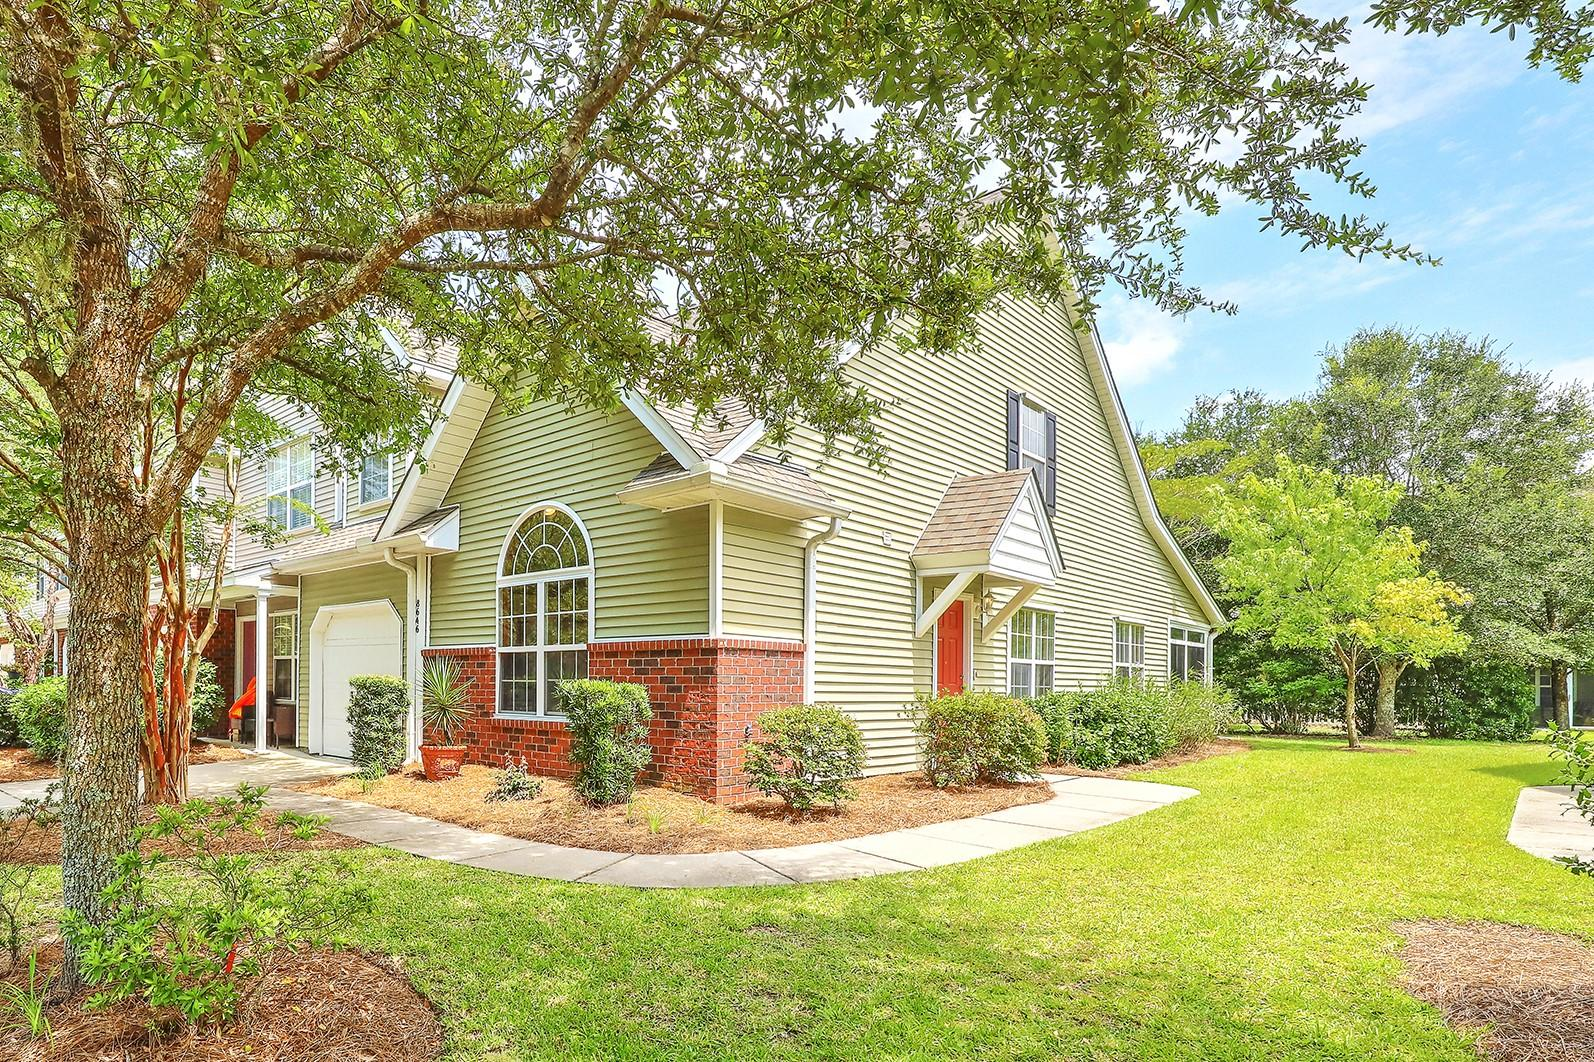 8646 Grassy Oak Trail North Charleston, SC 29420